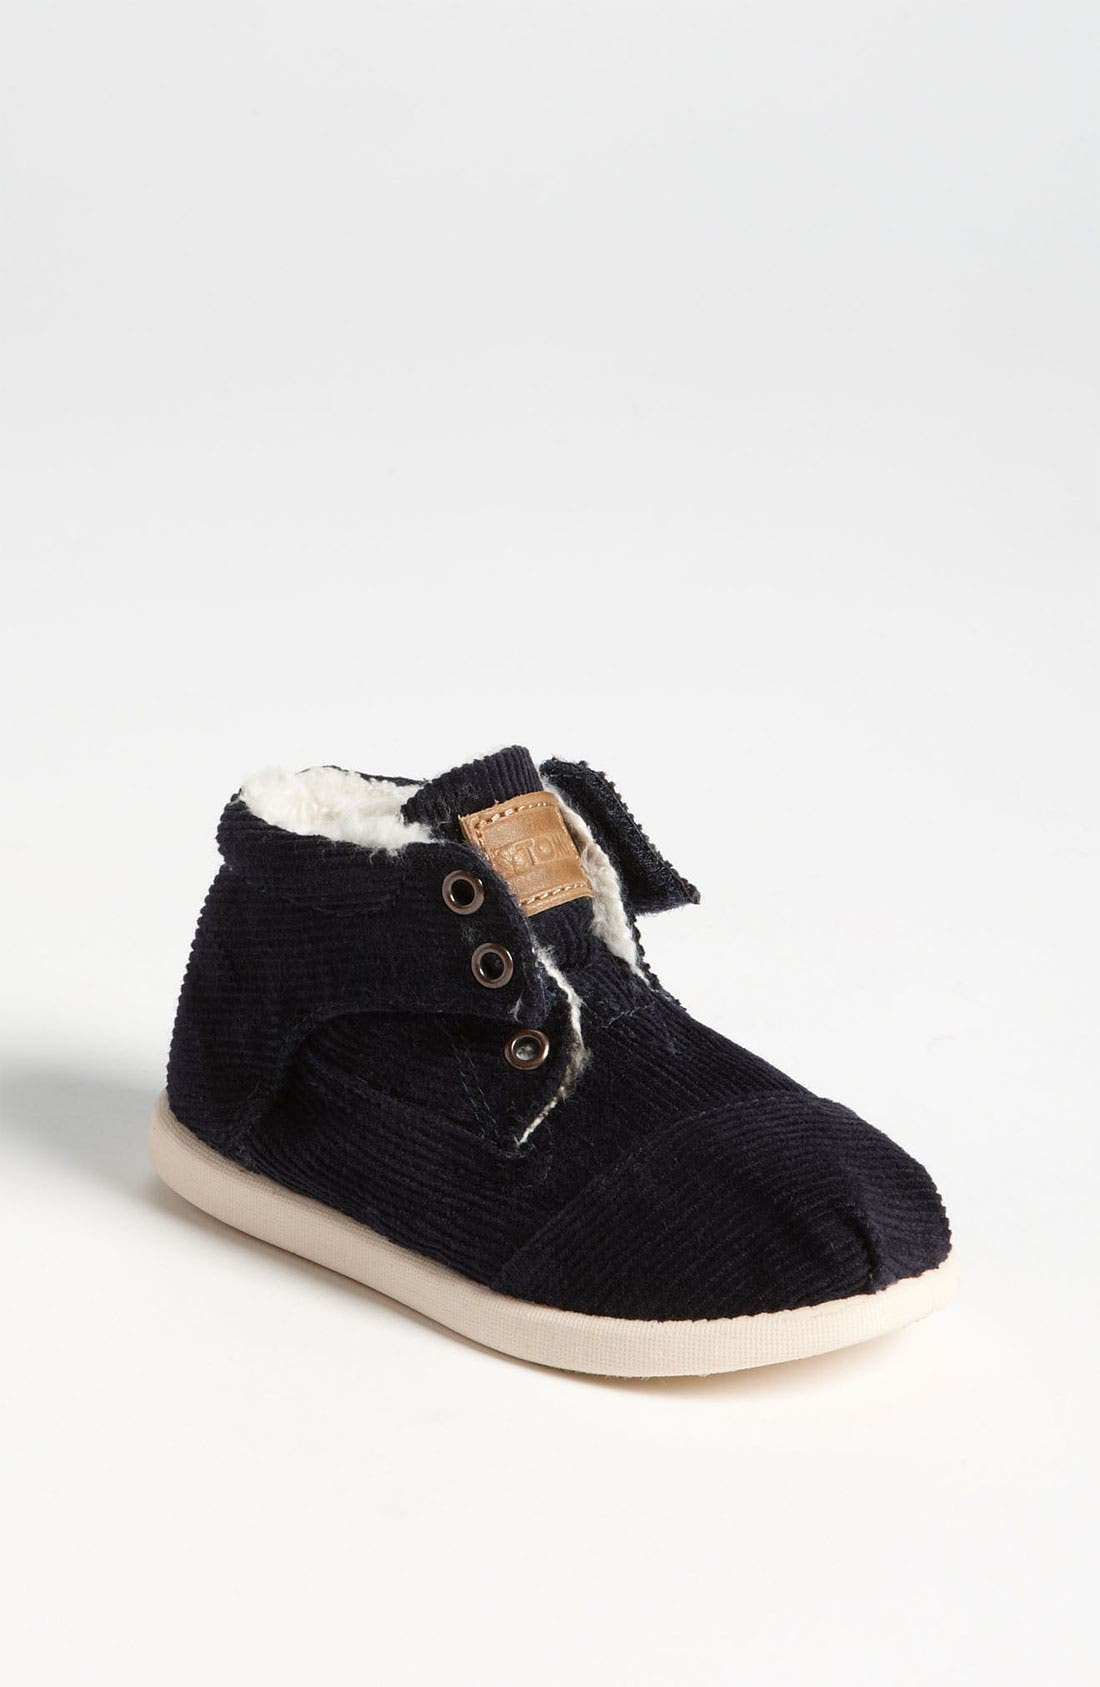 Main Image - TOMS 'Botas - Tiny' Corduroy Boot (Baby, Walker & Toddler)